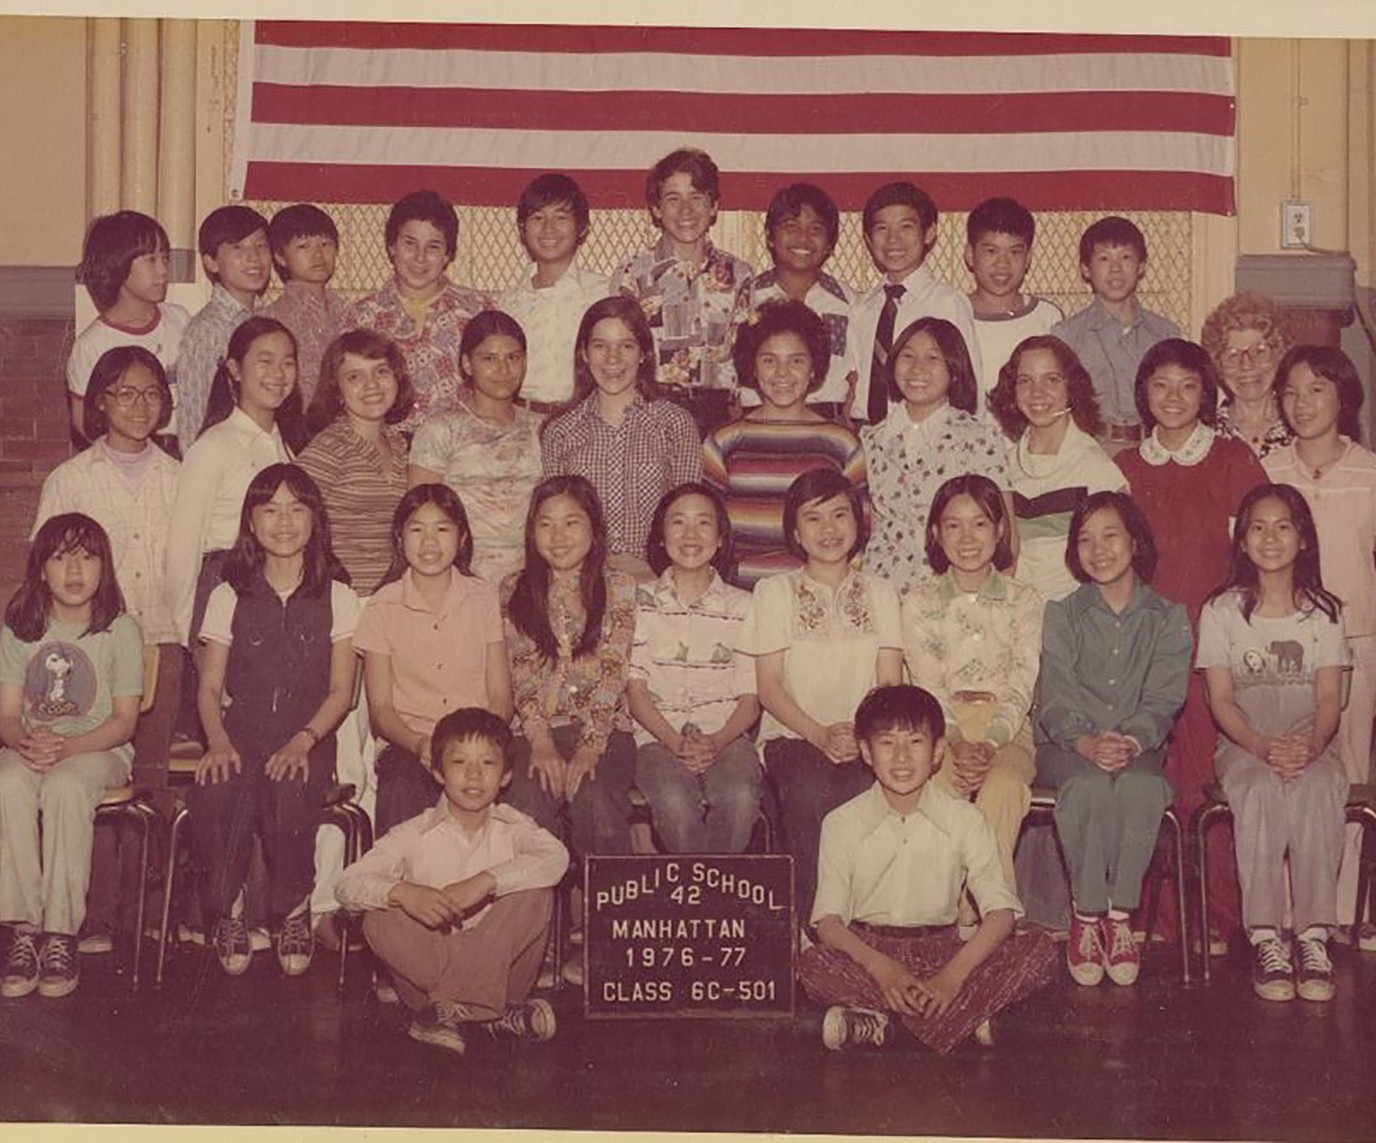 Alison Wong poses with her classmates and teacher for a class picture